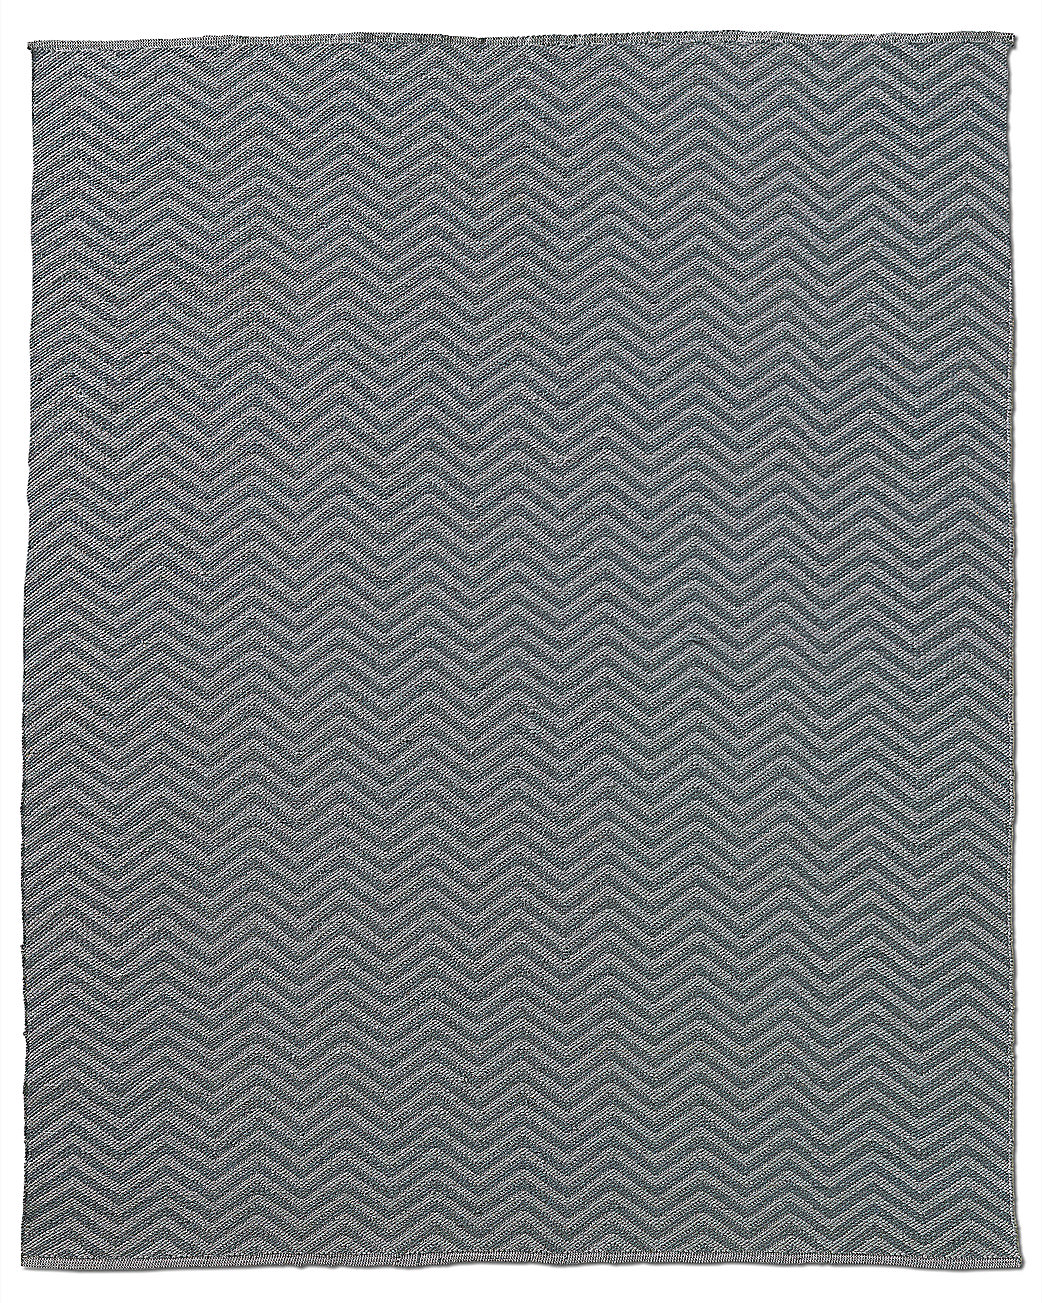 Chevron Flatweave Outdoor Rug - Silver/Charcoal